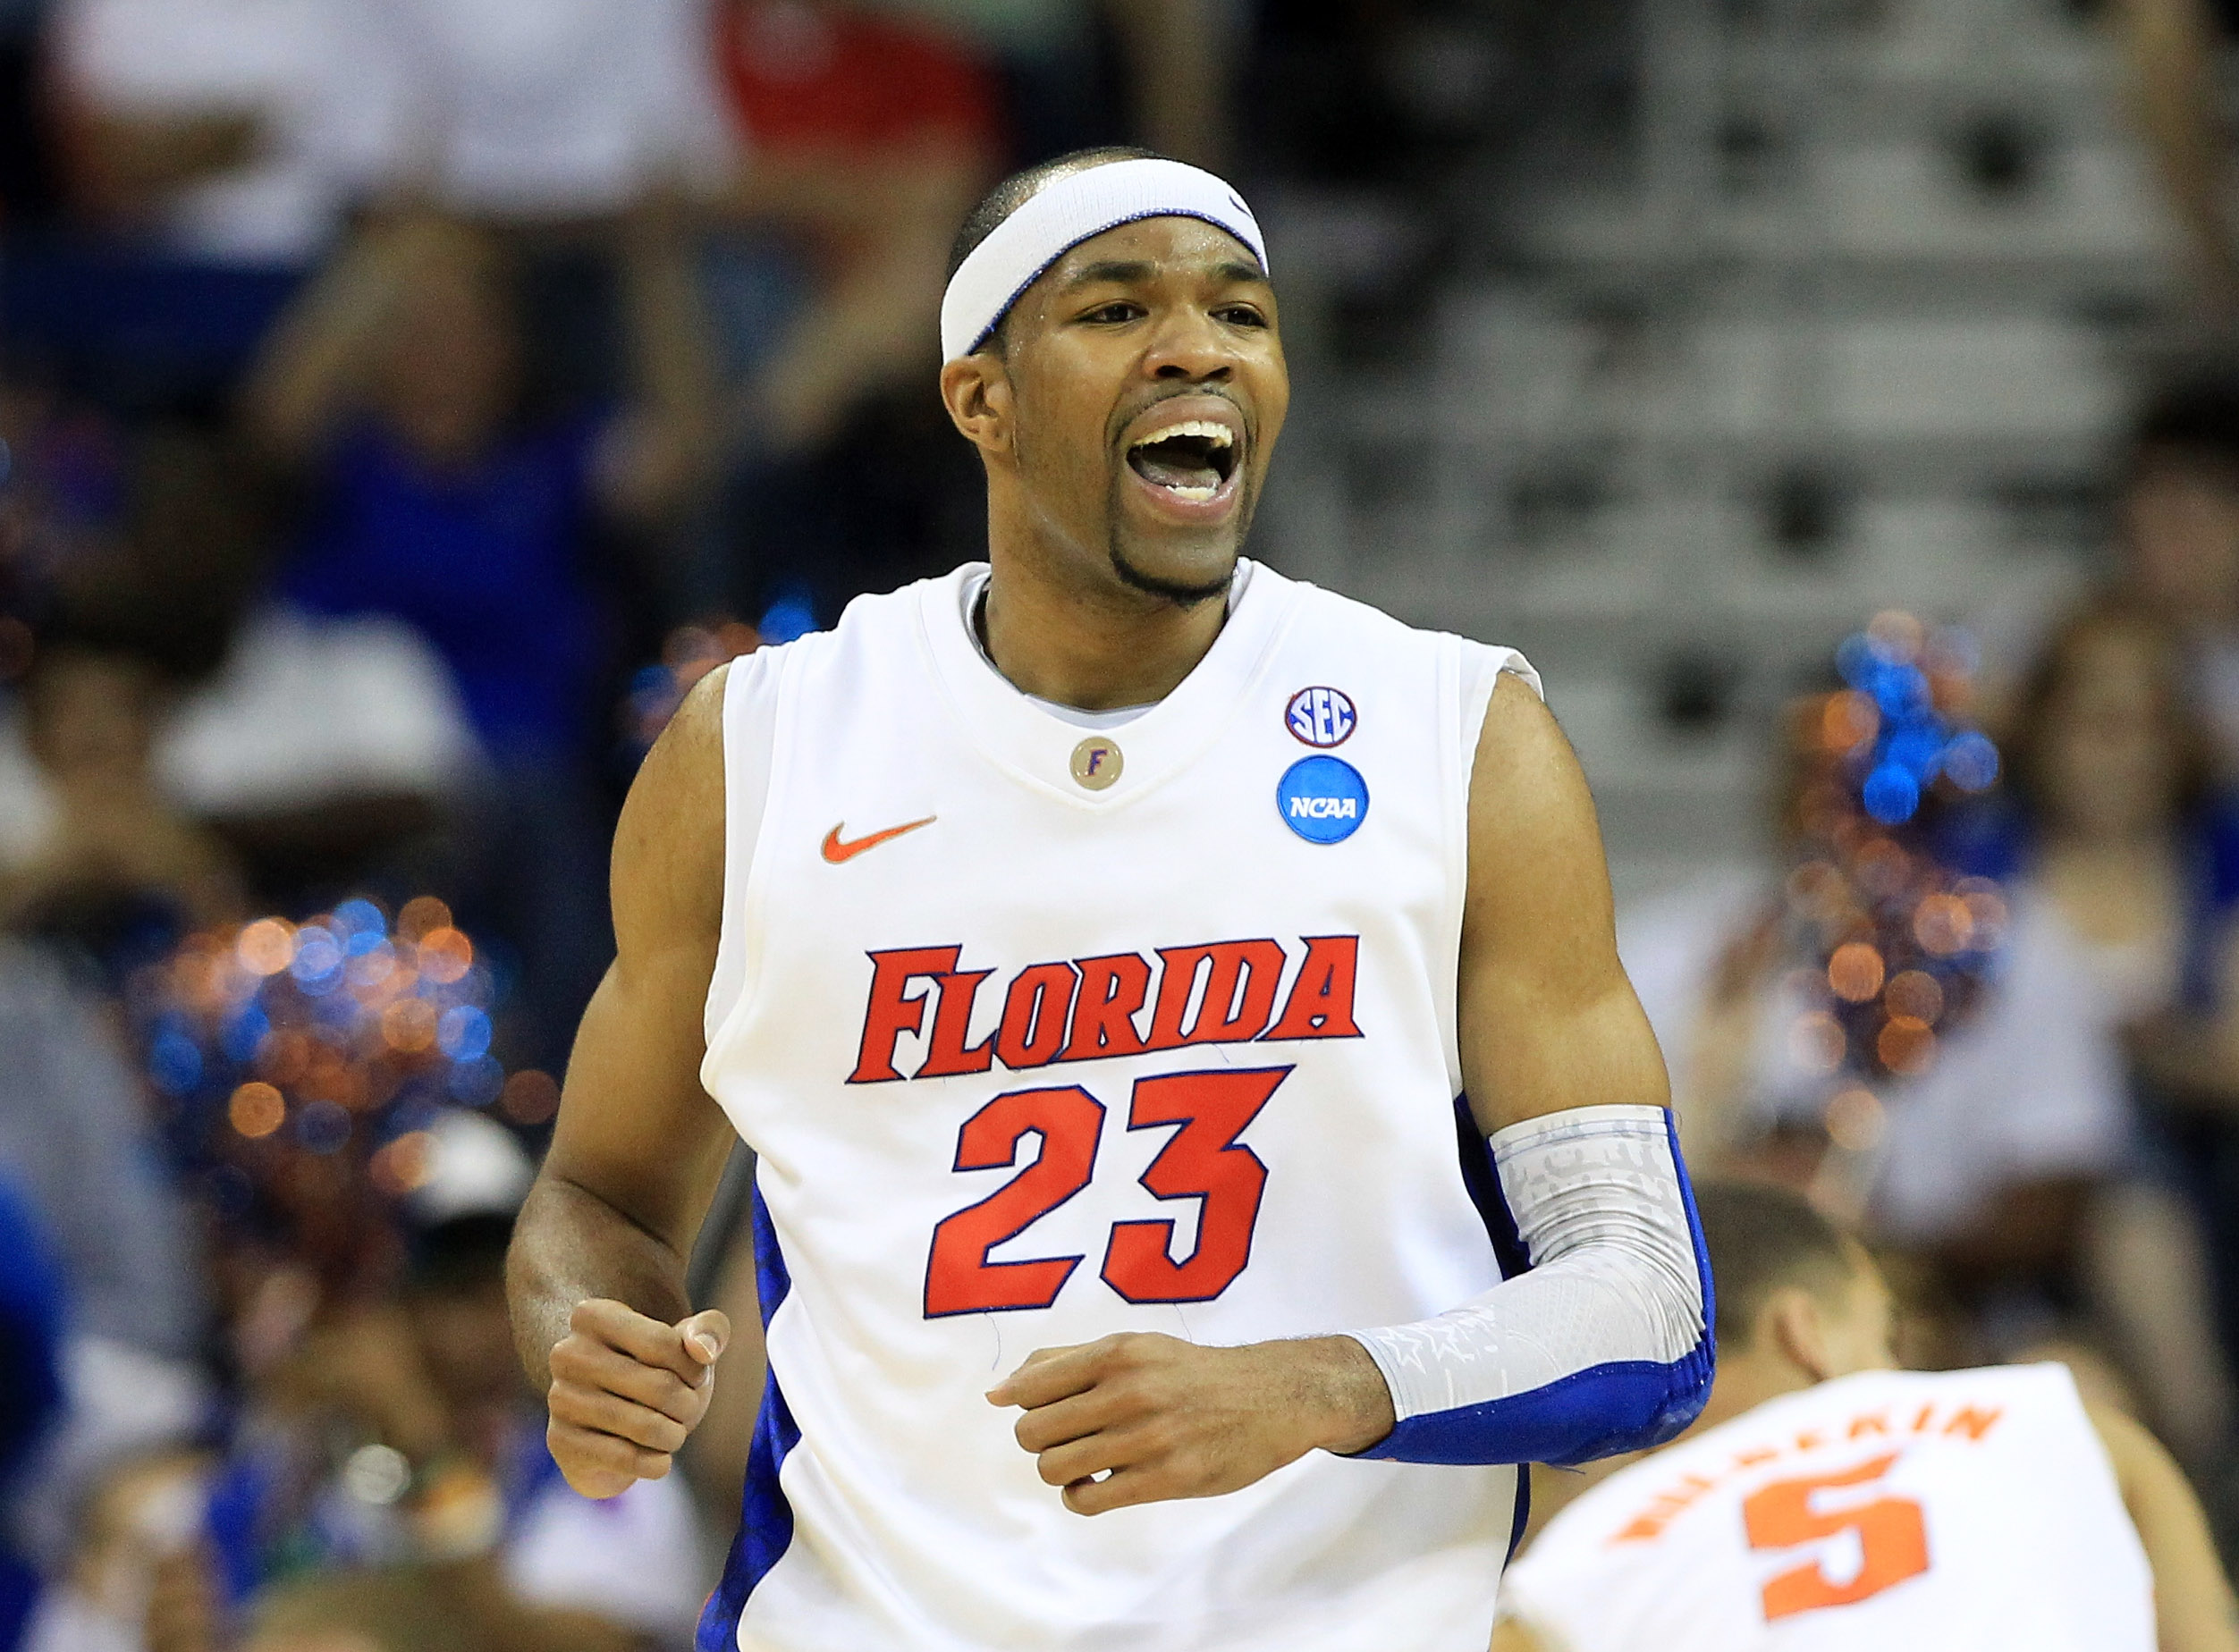 NEW ORLEANS, LA - MARCH 26:  Alex Tyus #23 of the Florida Gators celebrates during the second half of their game against the Butler Bulldogs in the Southeast regional final of the 2011 NCAA men's basketball tournament at New Orleans Arena on March 26, 201